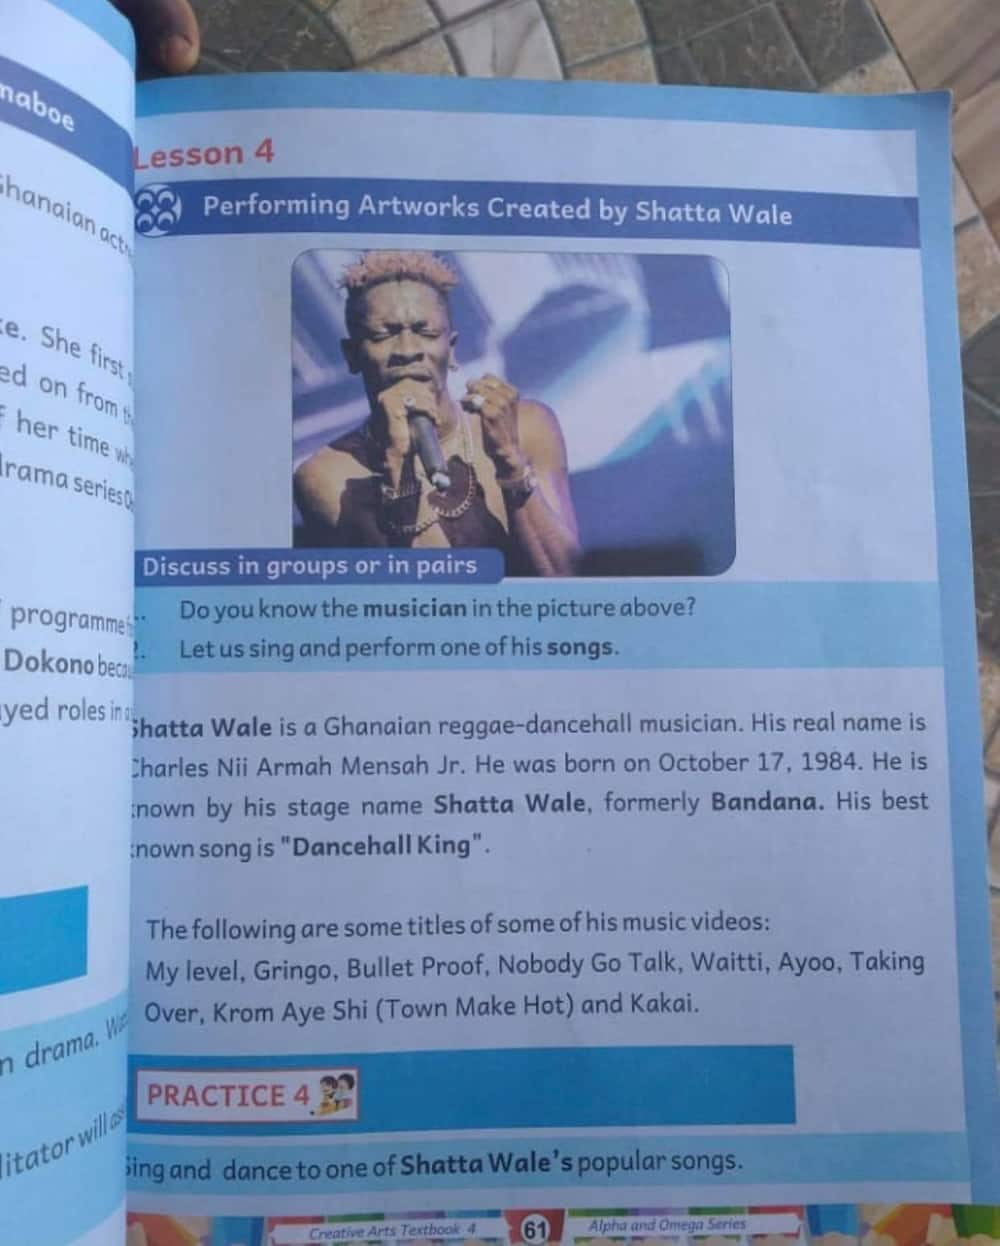 Shatta Wale featured in GES approved Creative Arts textbook